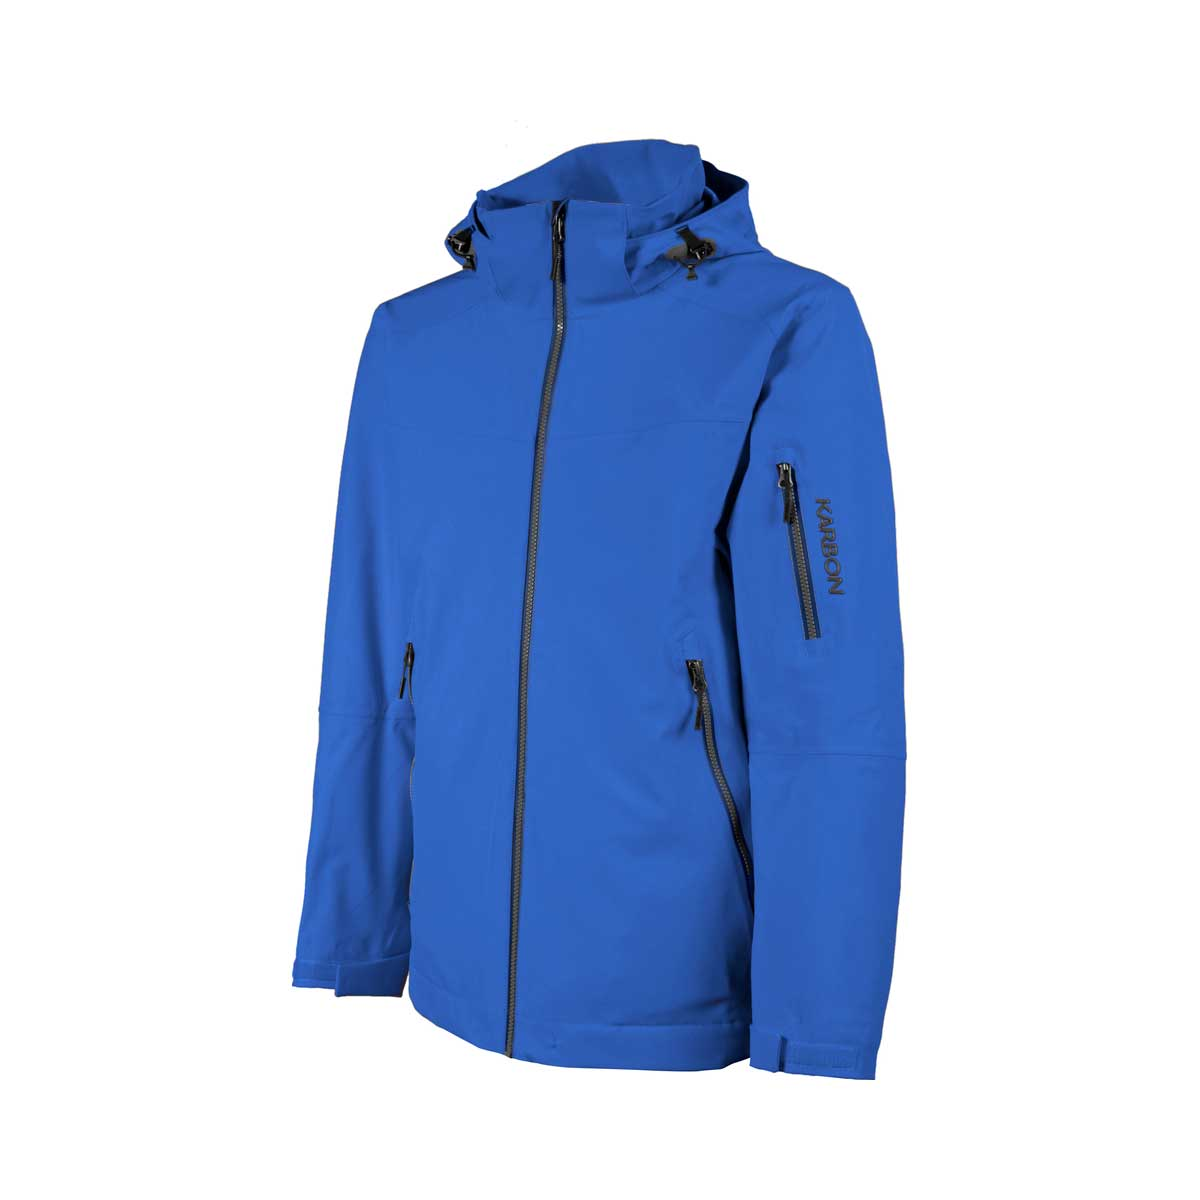 Karbon Men's McKinley Jacket in Blue